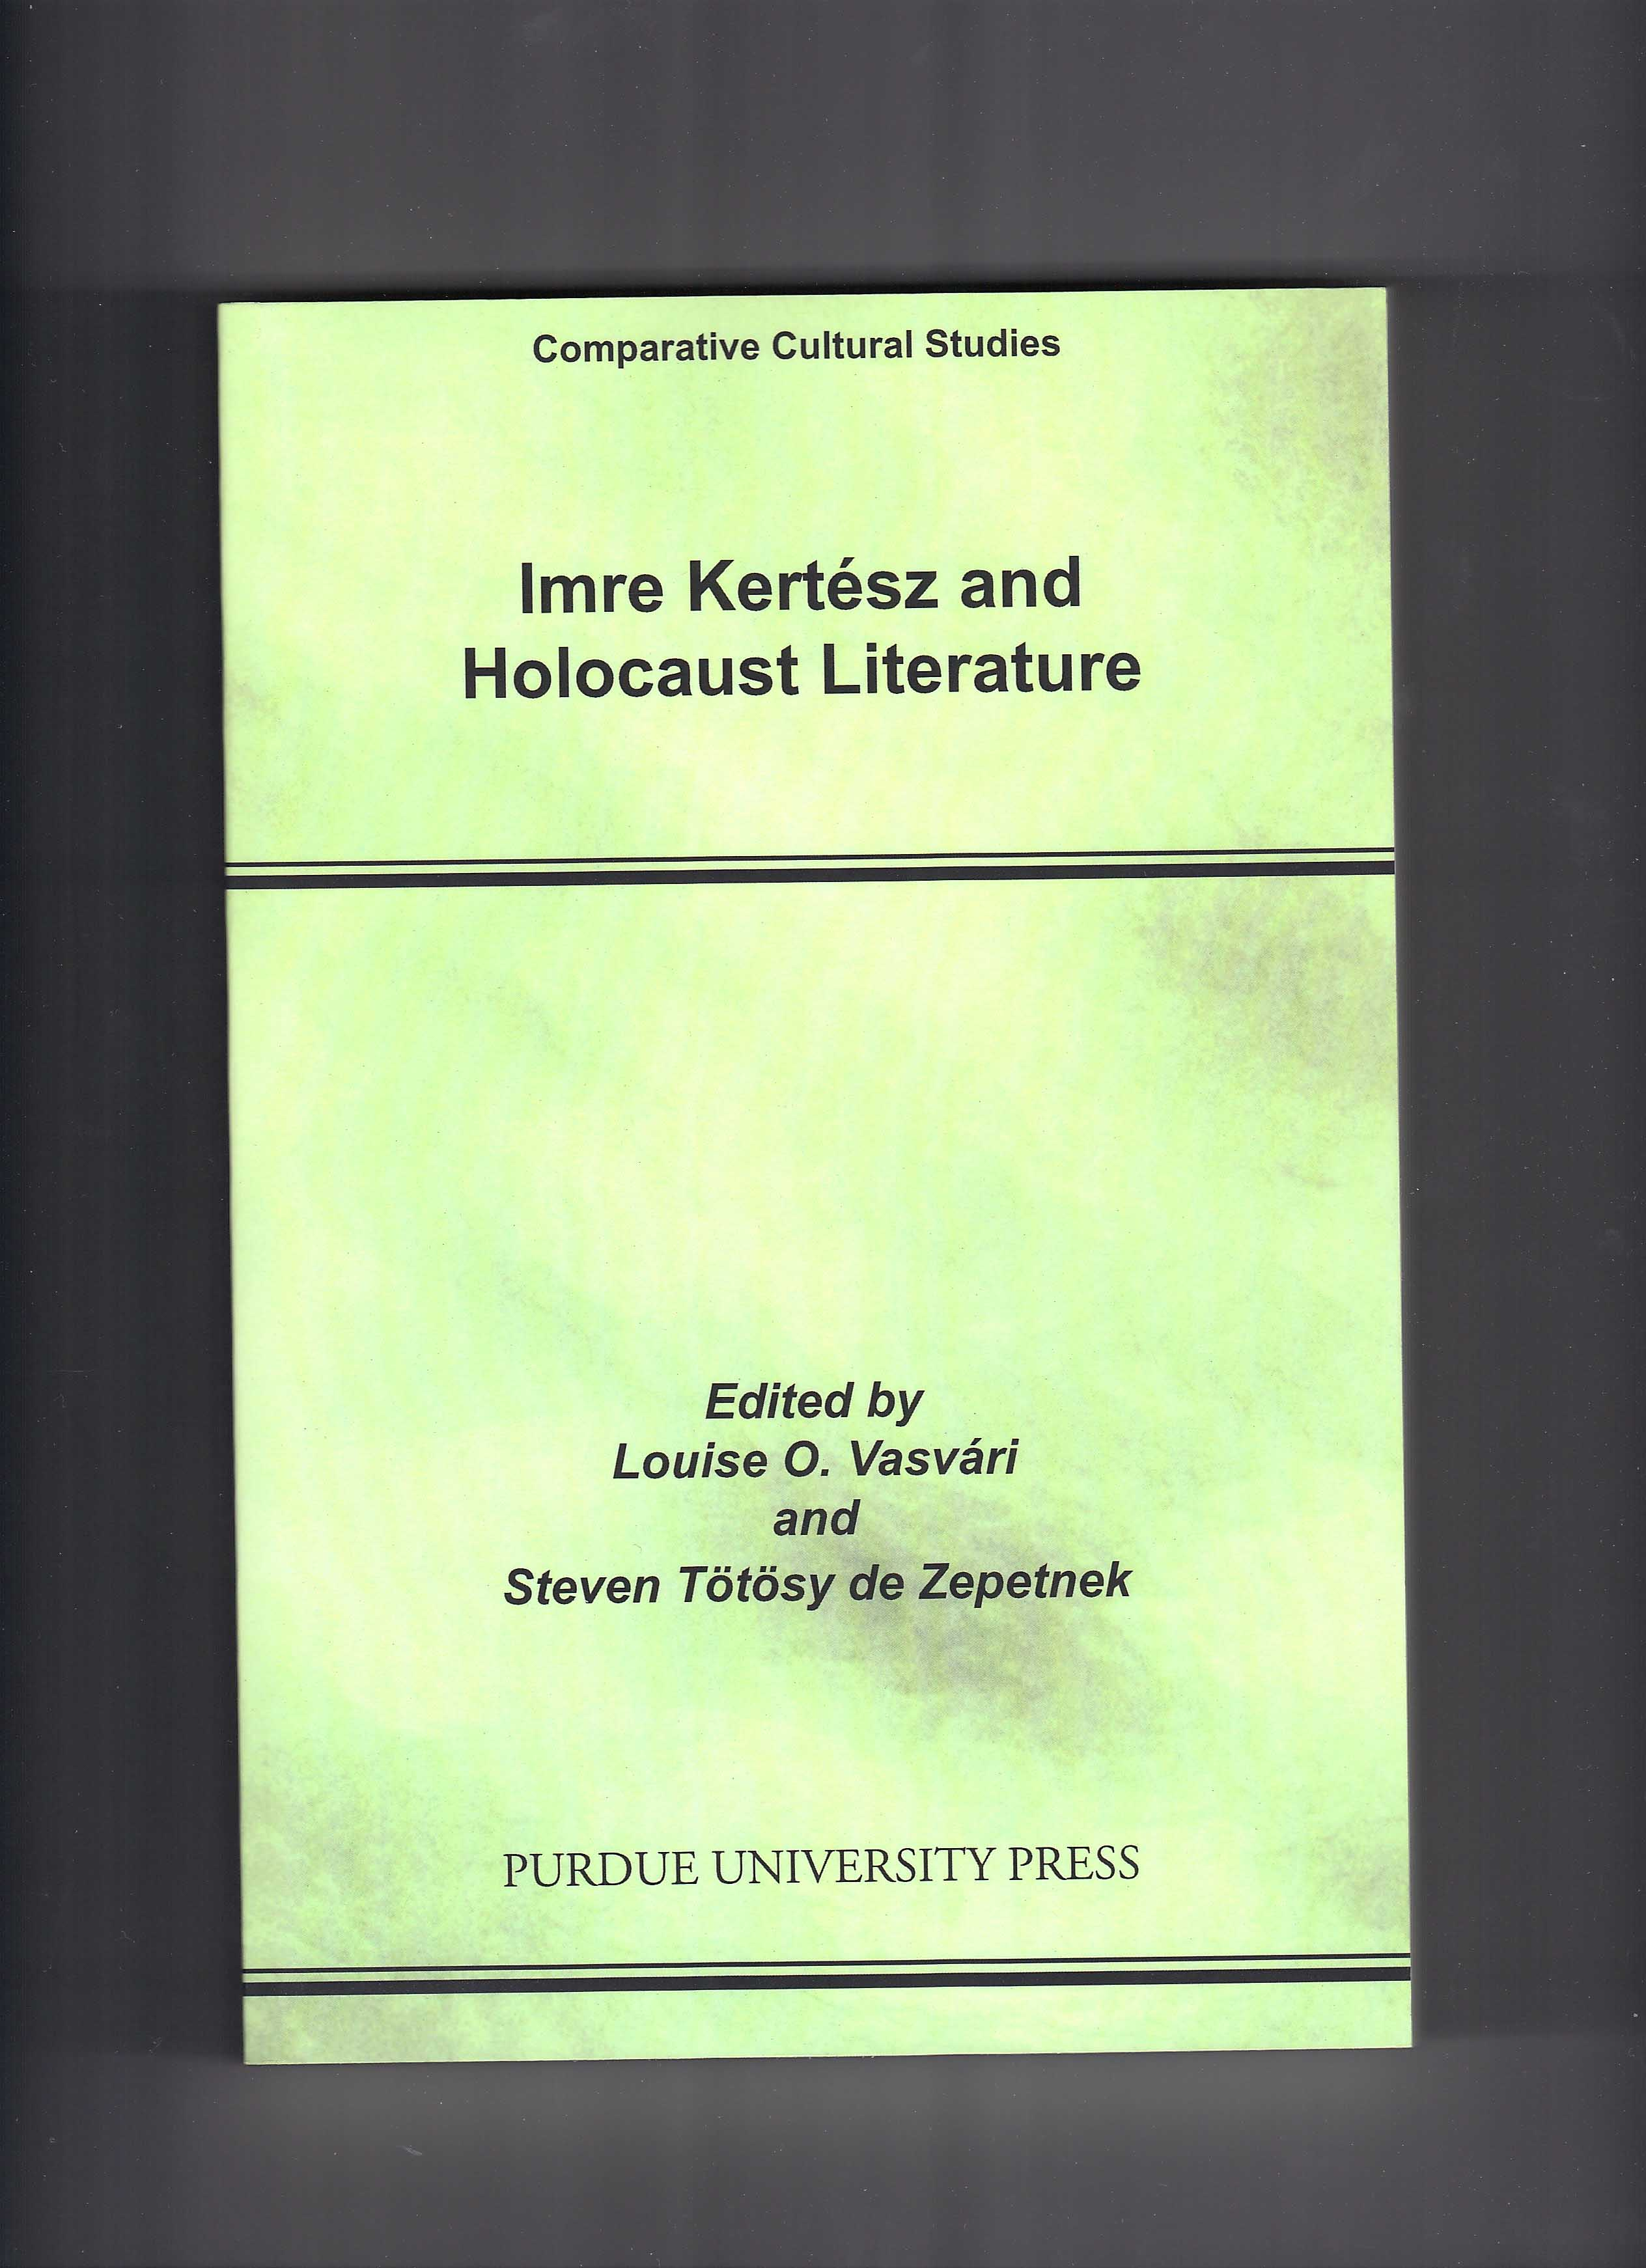 Imre Kert�sz and Holocaust Literature. Ed. Louise O. Vasv�ri and Steven T�t�sy de Zepetnek. West Lafayette: Purdue University Press, 2005.